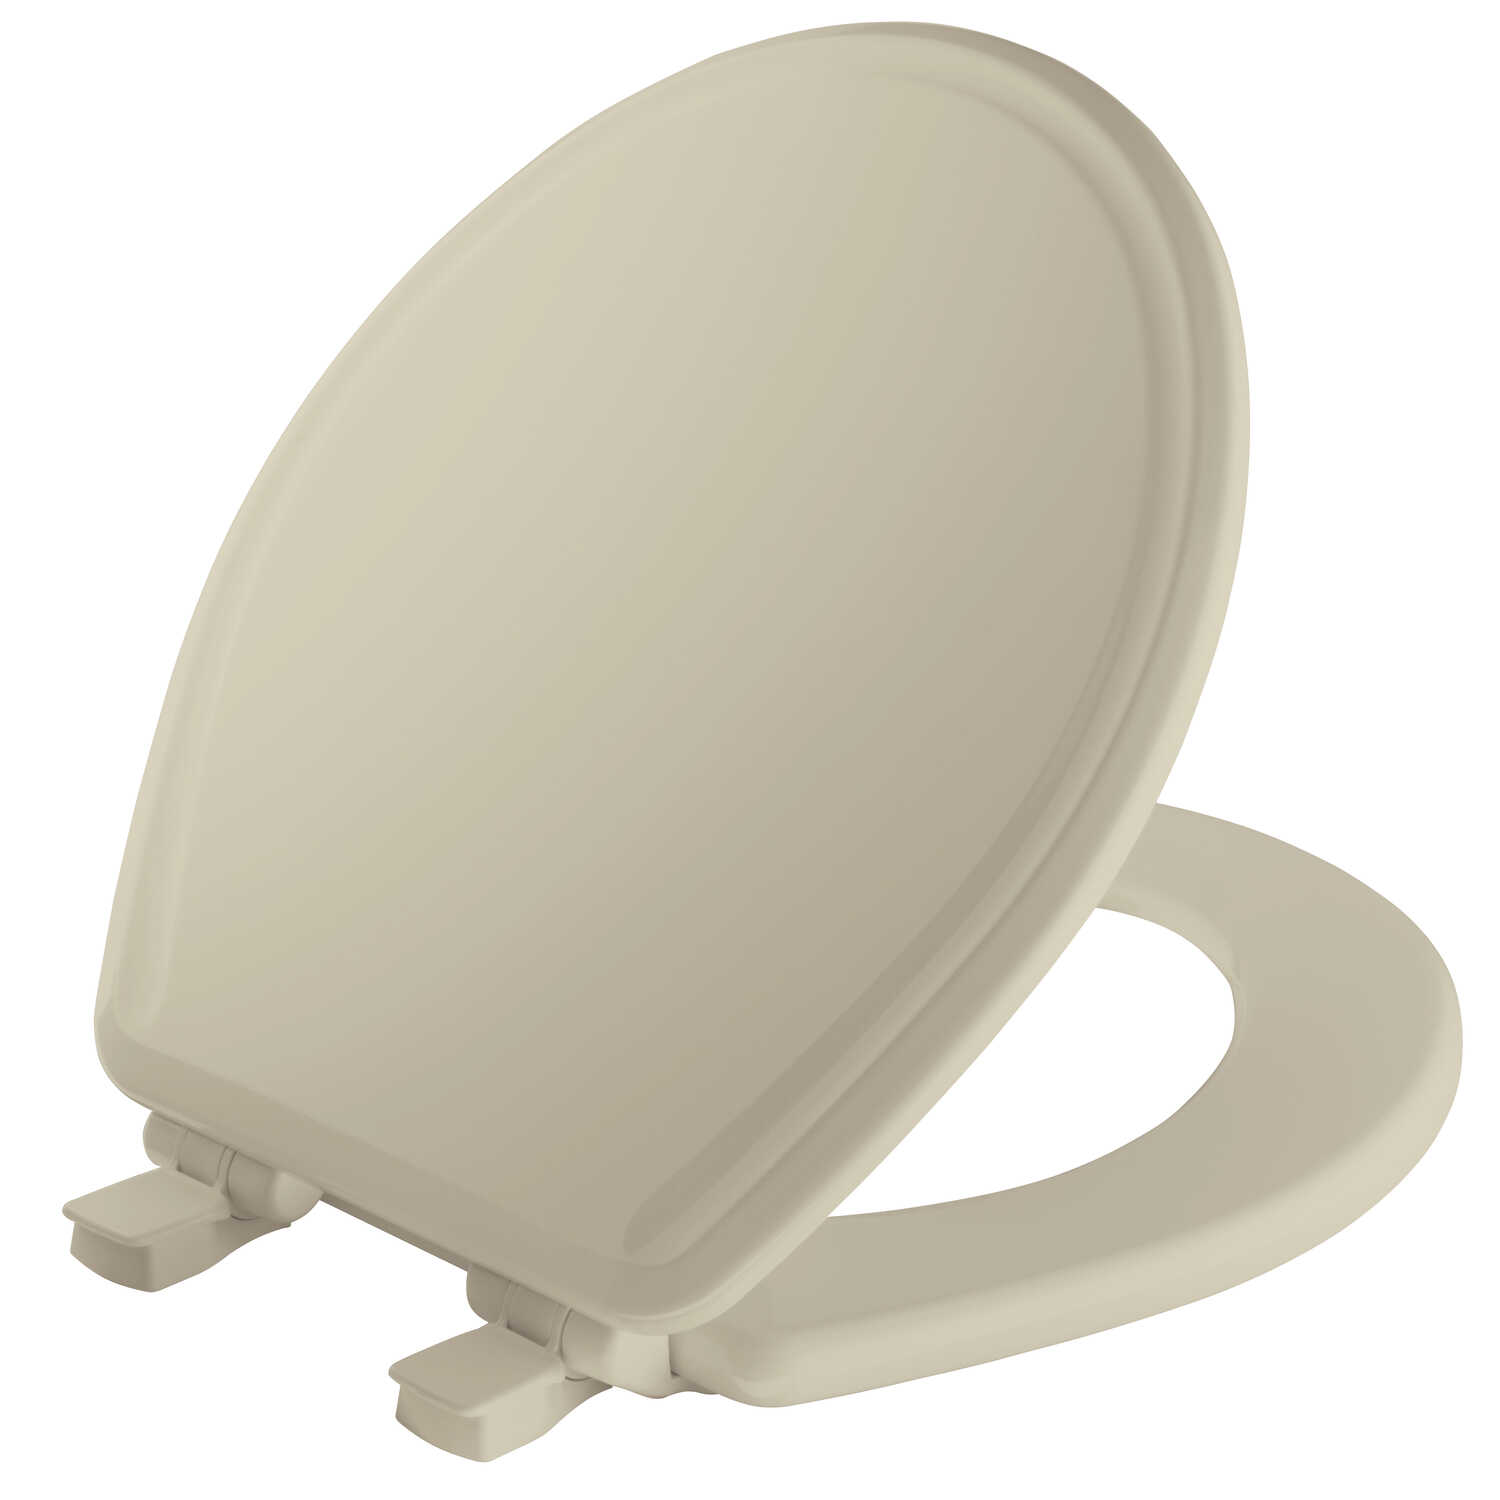 Mayfair  Slow Close Round  Bone  Molded Wood  Toilet Seat